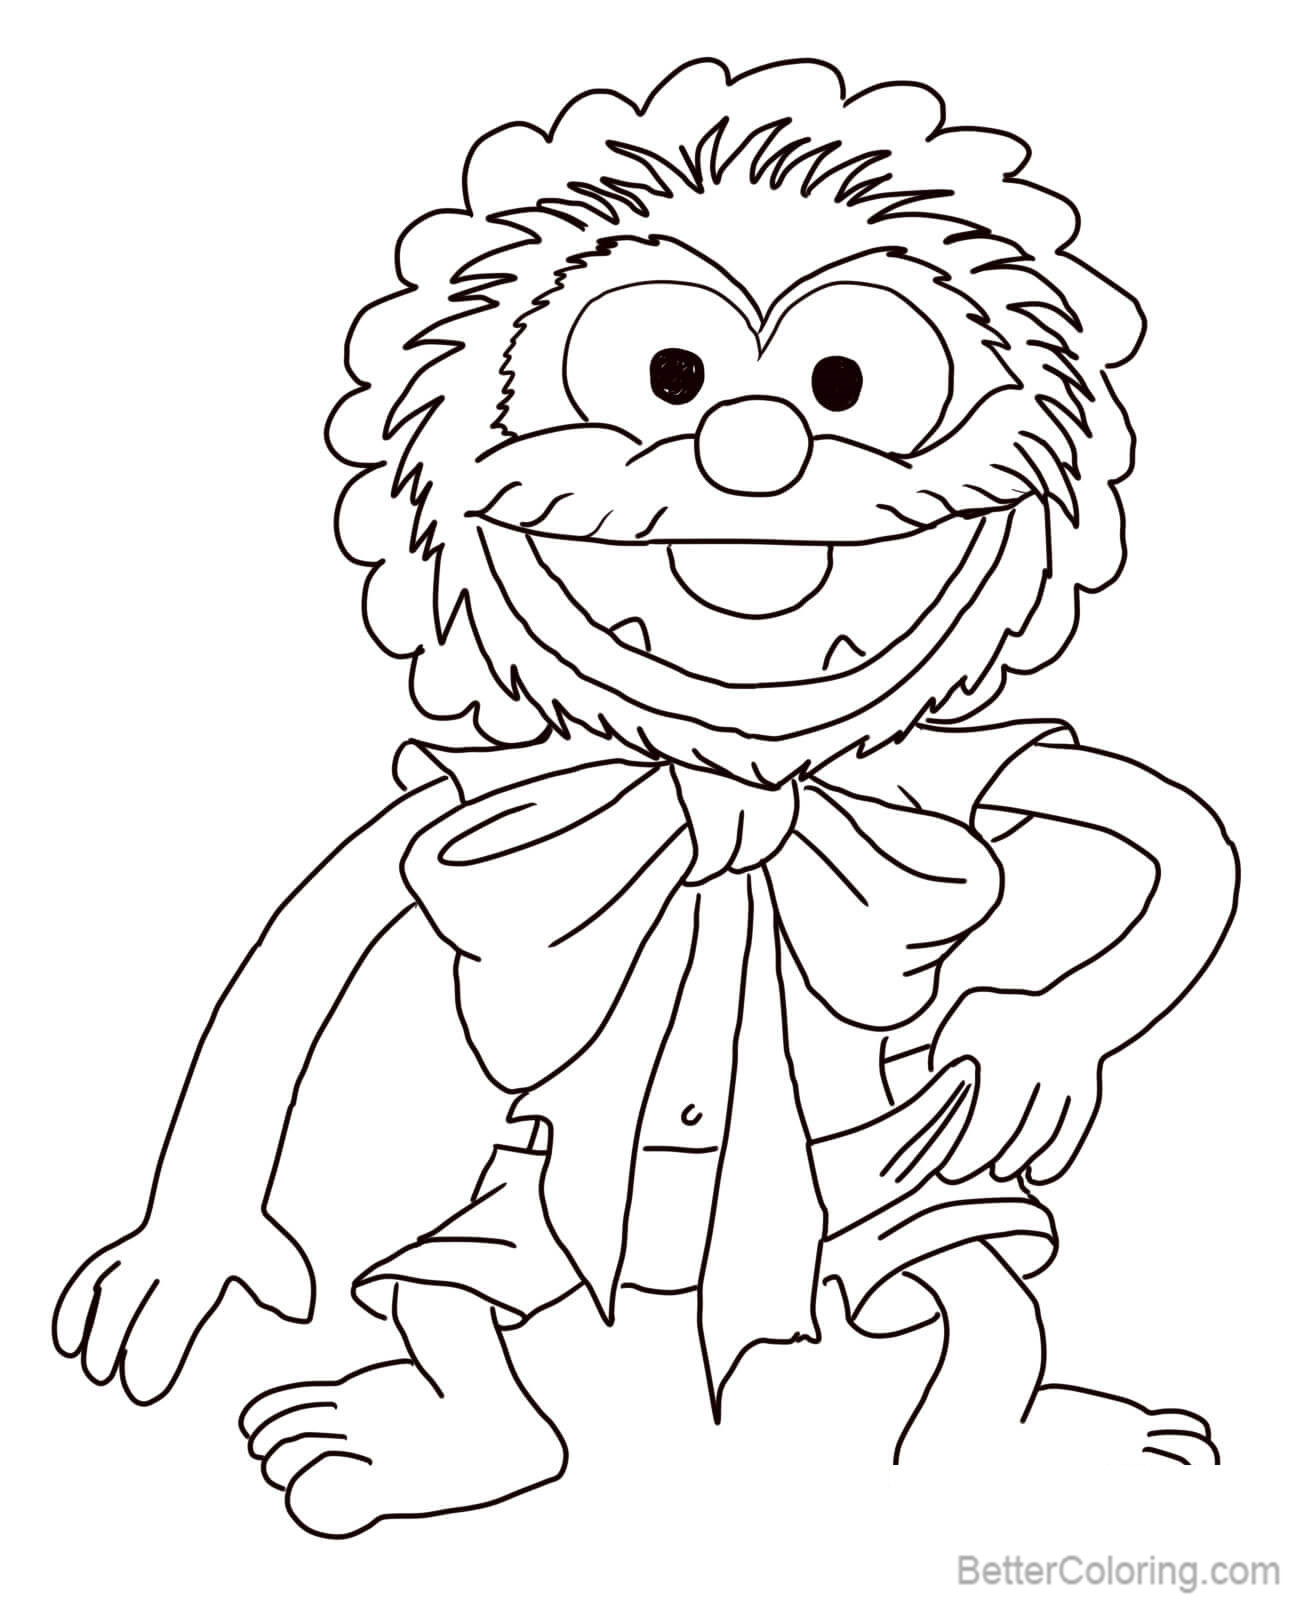 Muppet babies coloring pages baby animals free printable Coloring book 10 baby animals